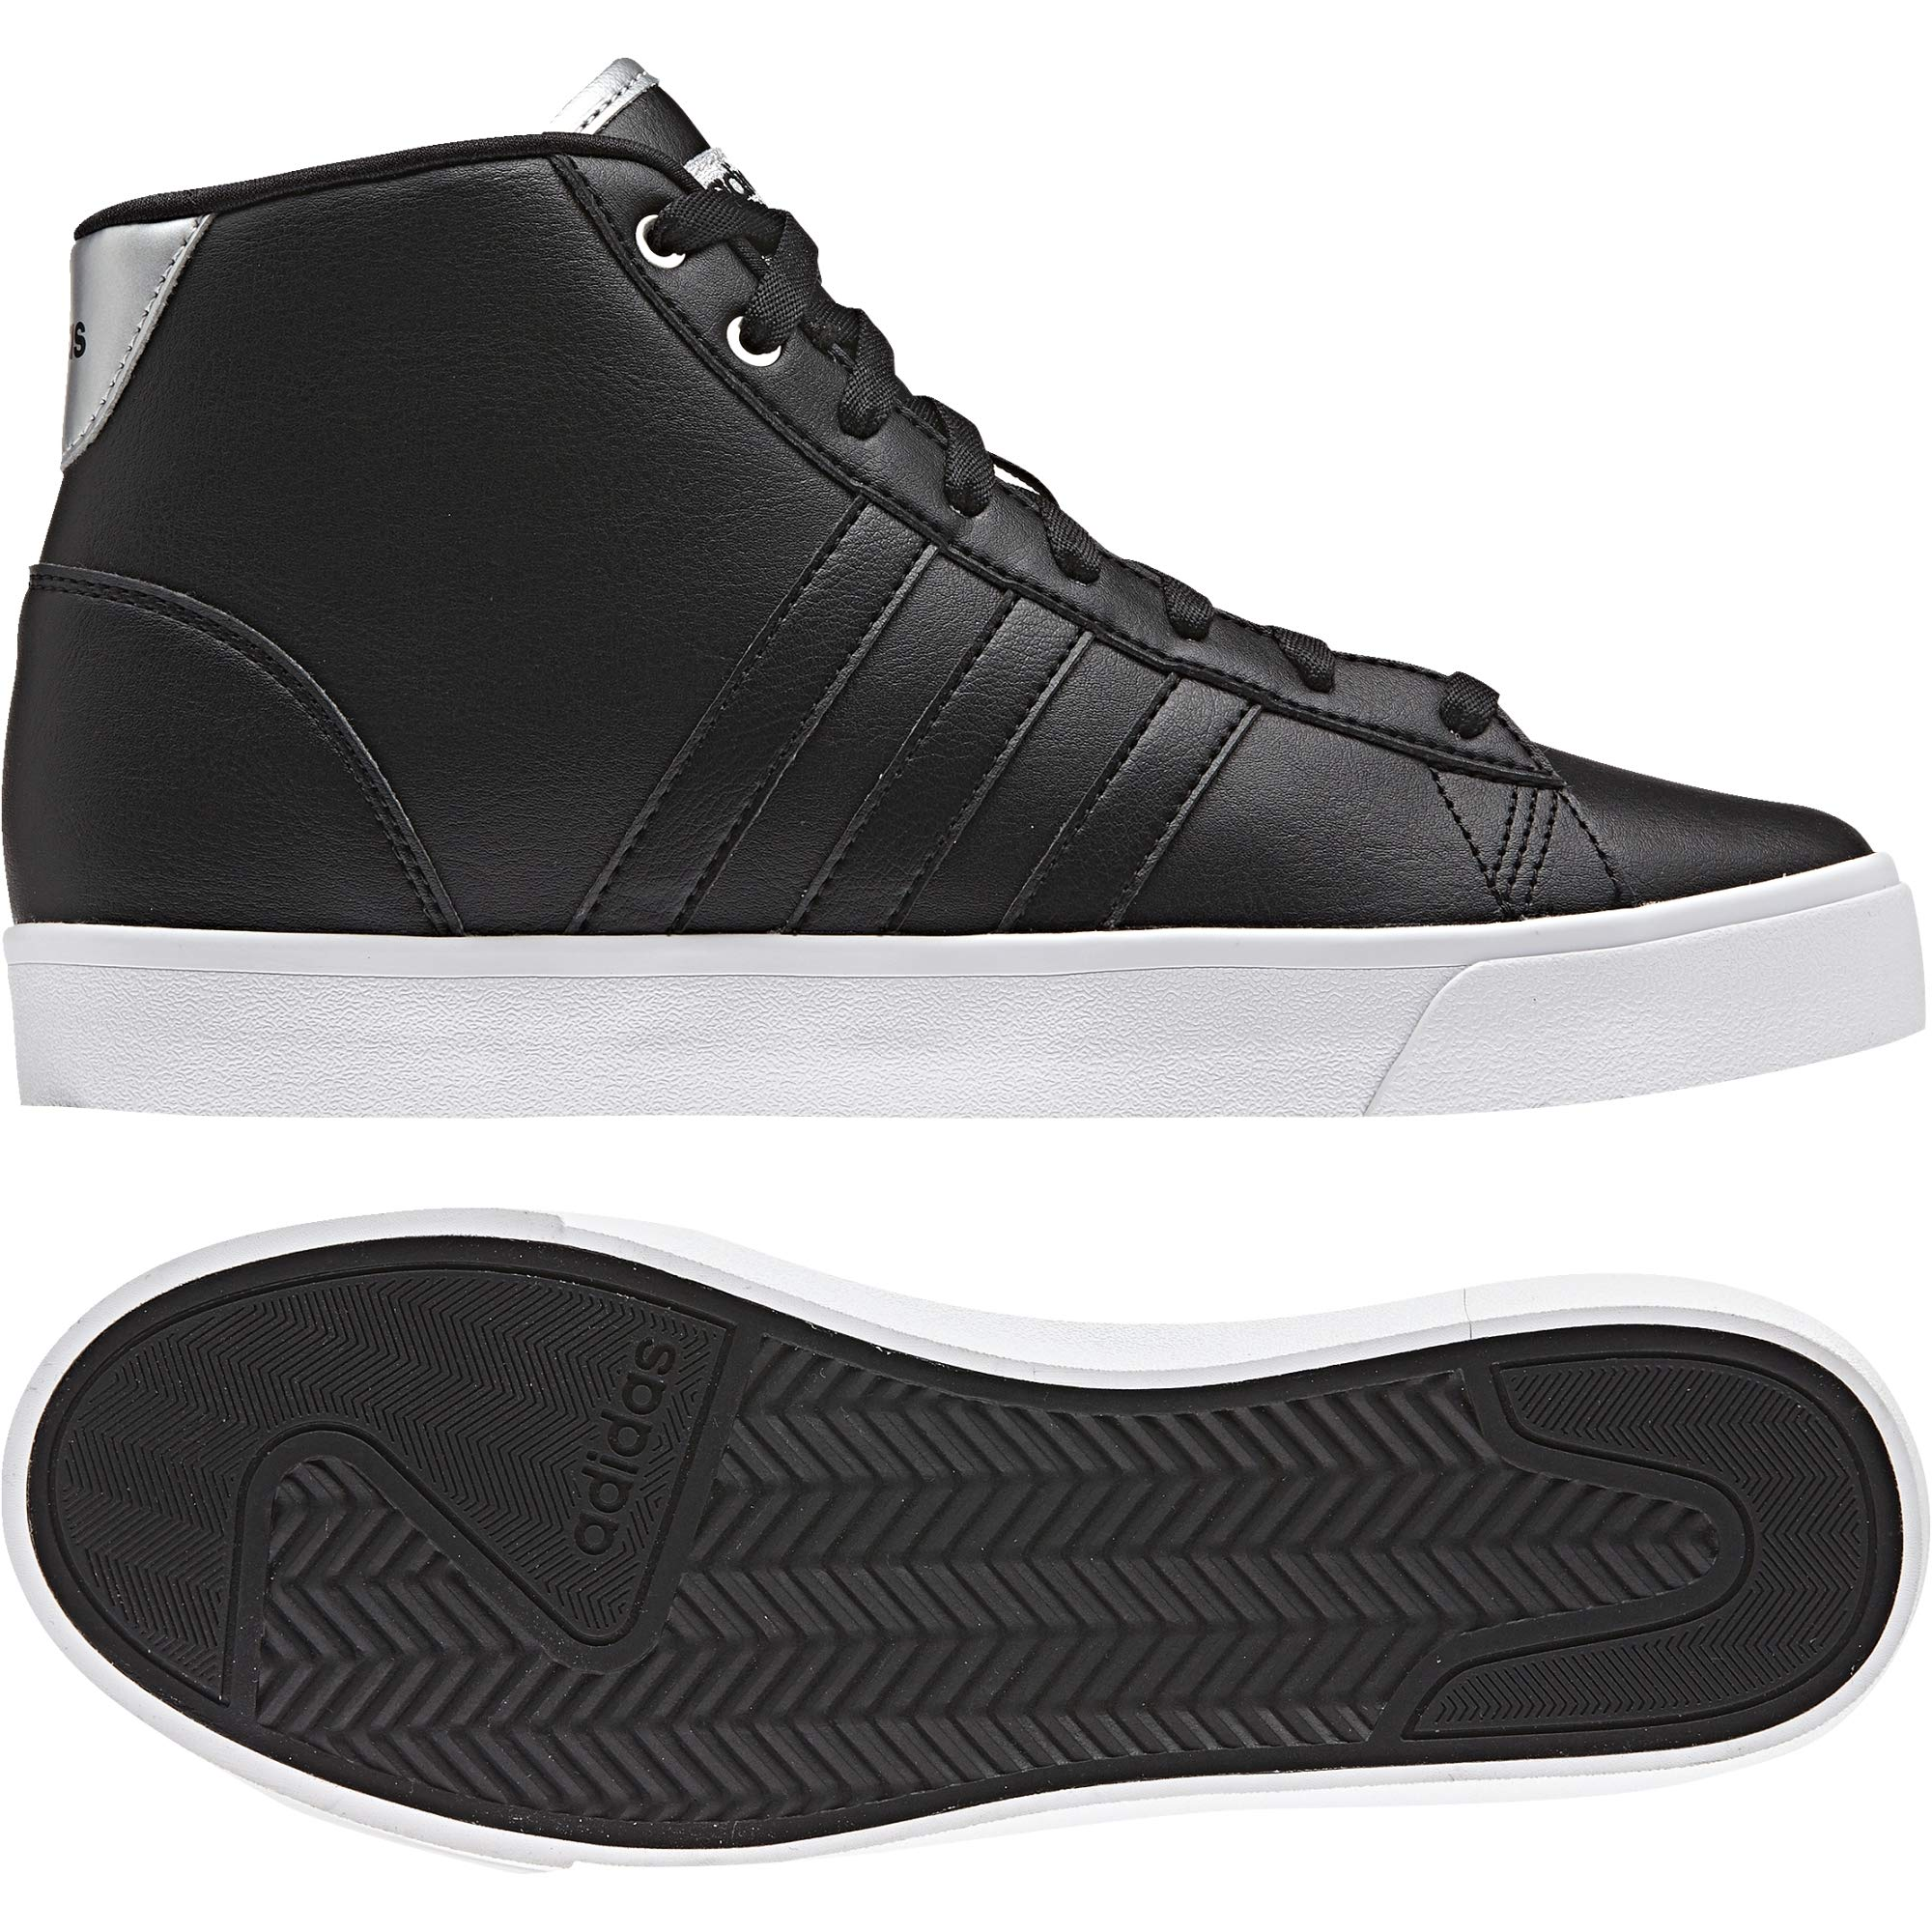 adidas Women's Cloudfoam Daily Qt Mid Aw4012 Hi-Top Trainers